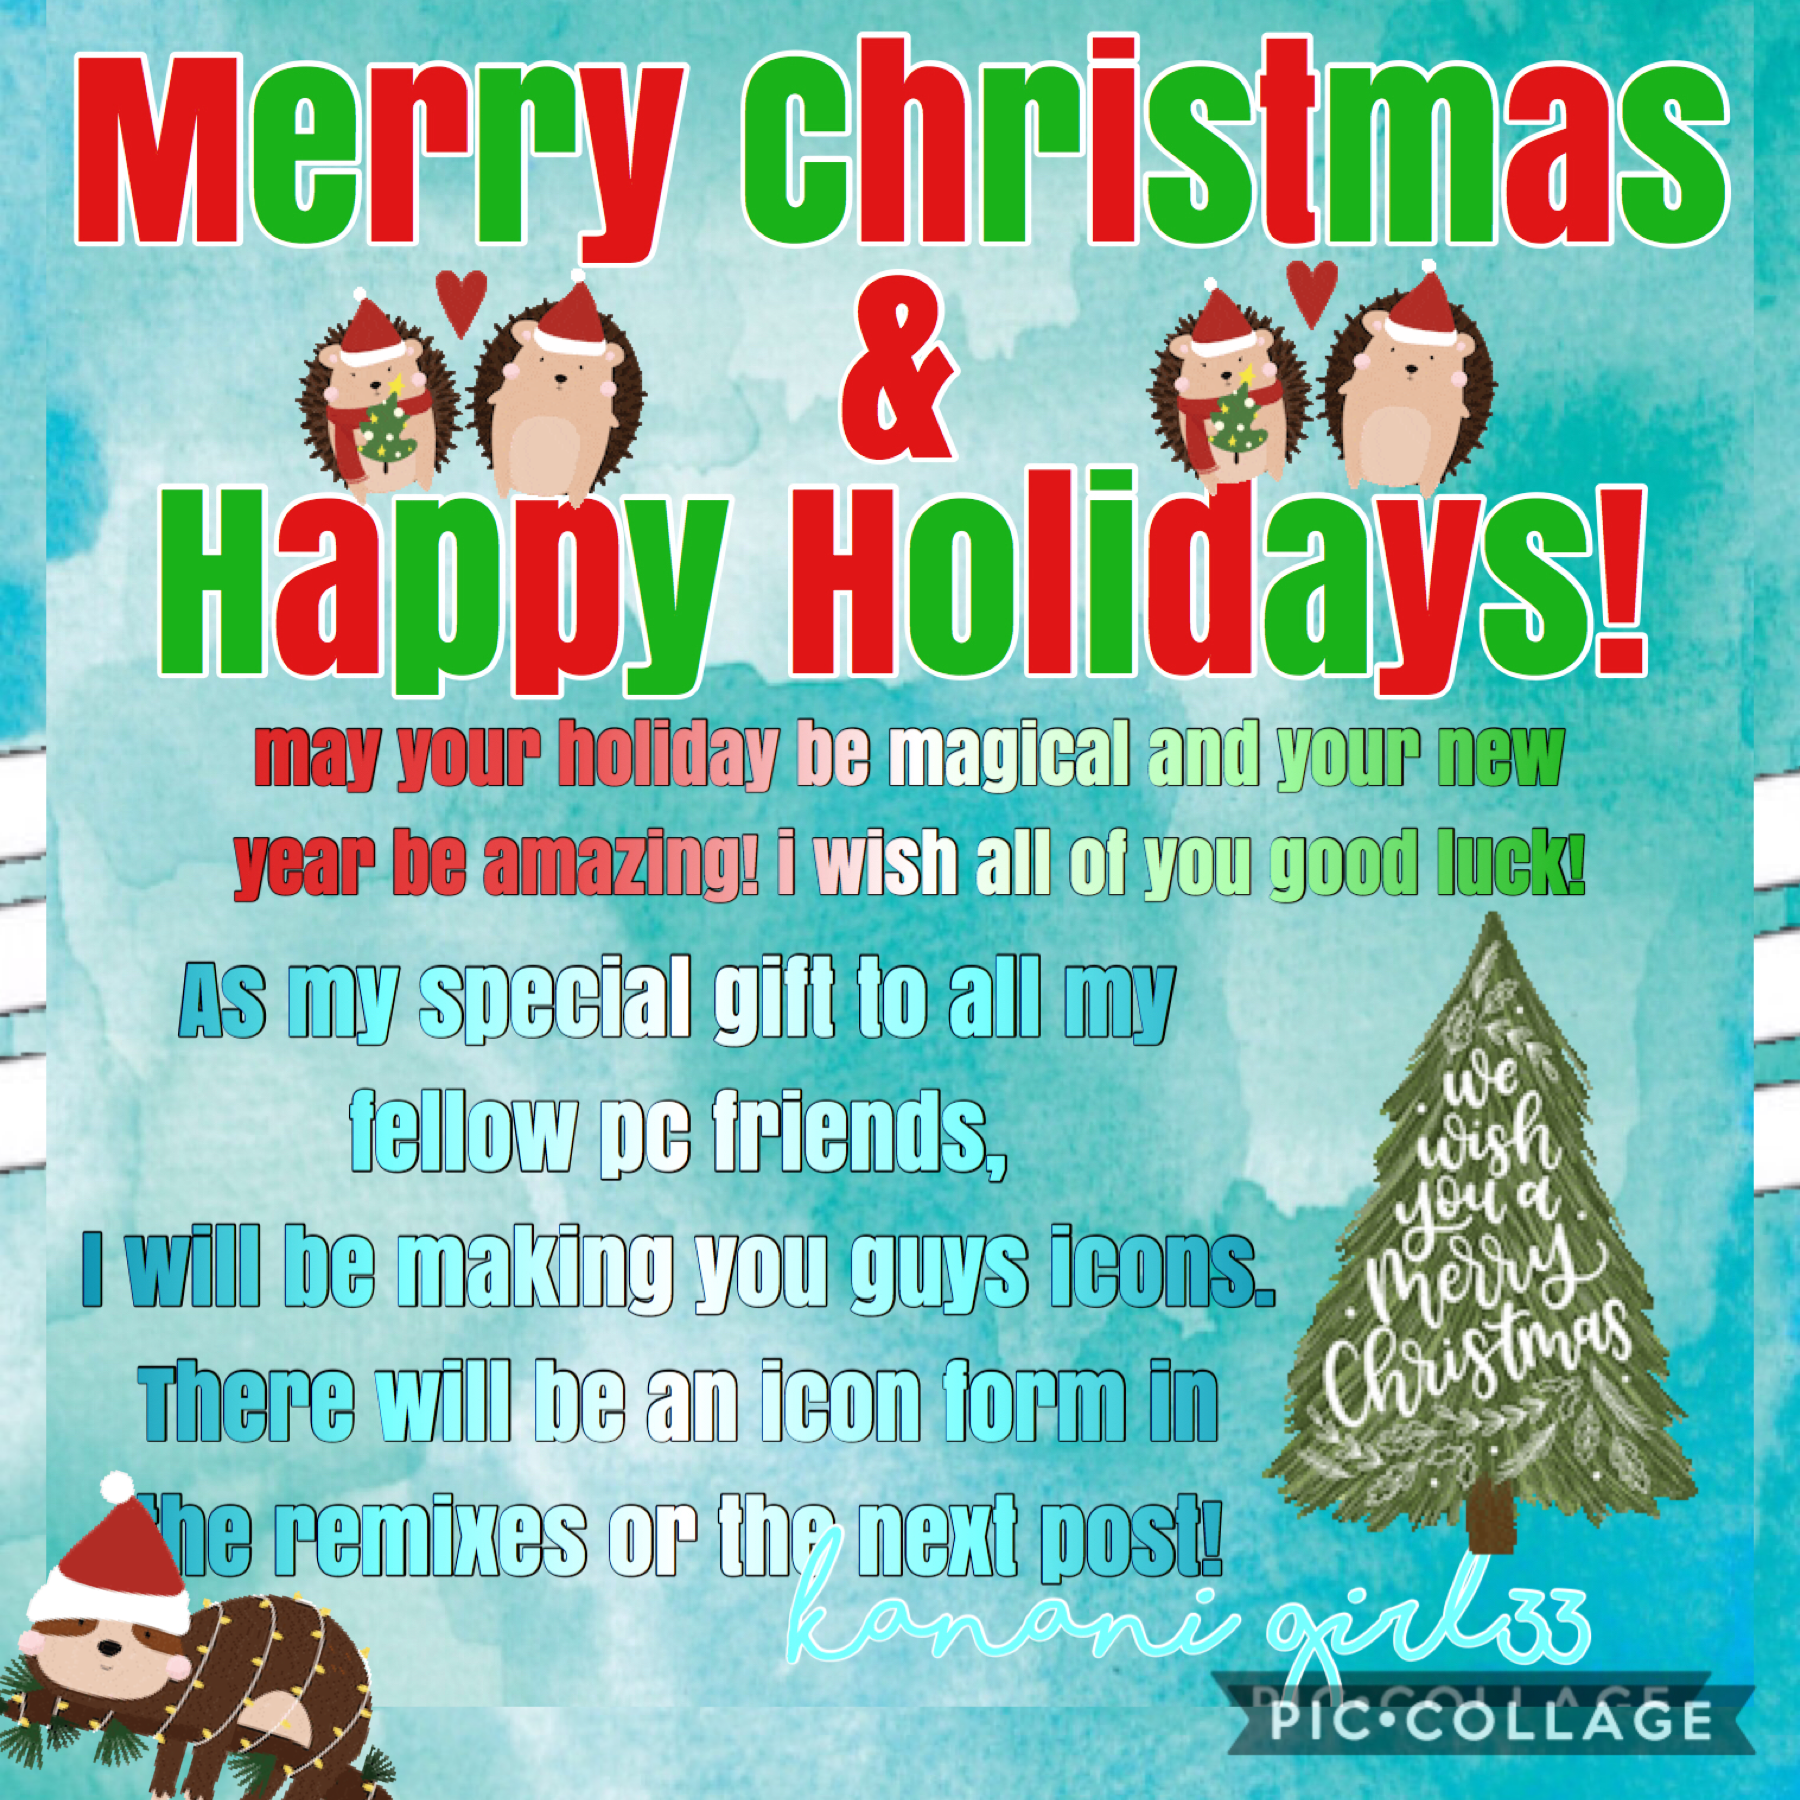 Merry Christmas and Happy Holidays!!! Hope you guys have an amazing rest of the year and blessed new year!! ❄️☃️🎄🎁♥️💕